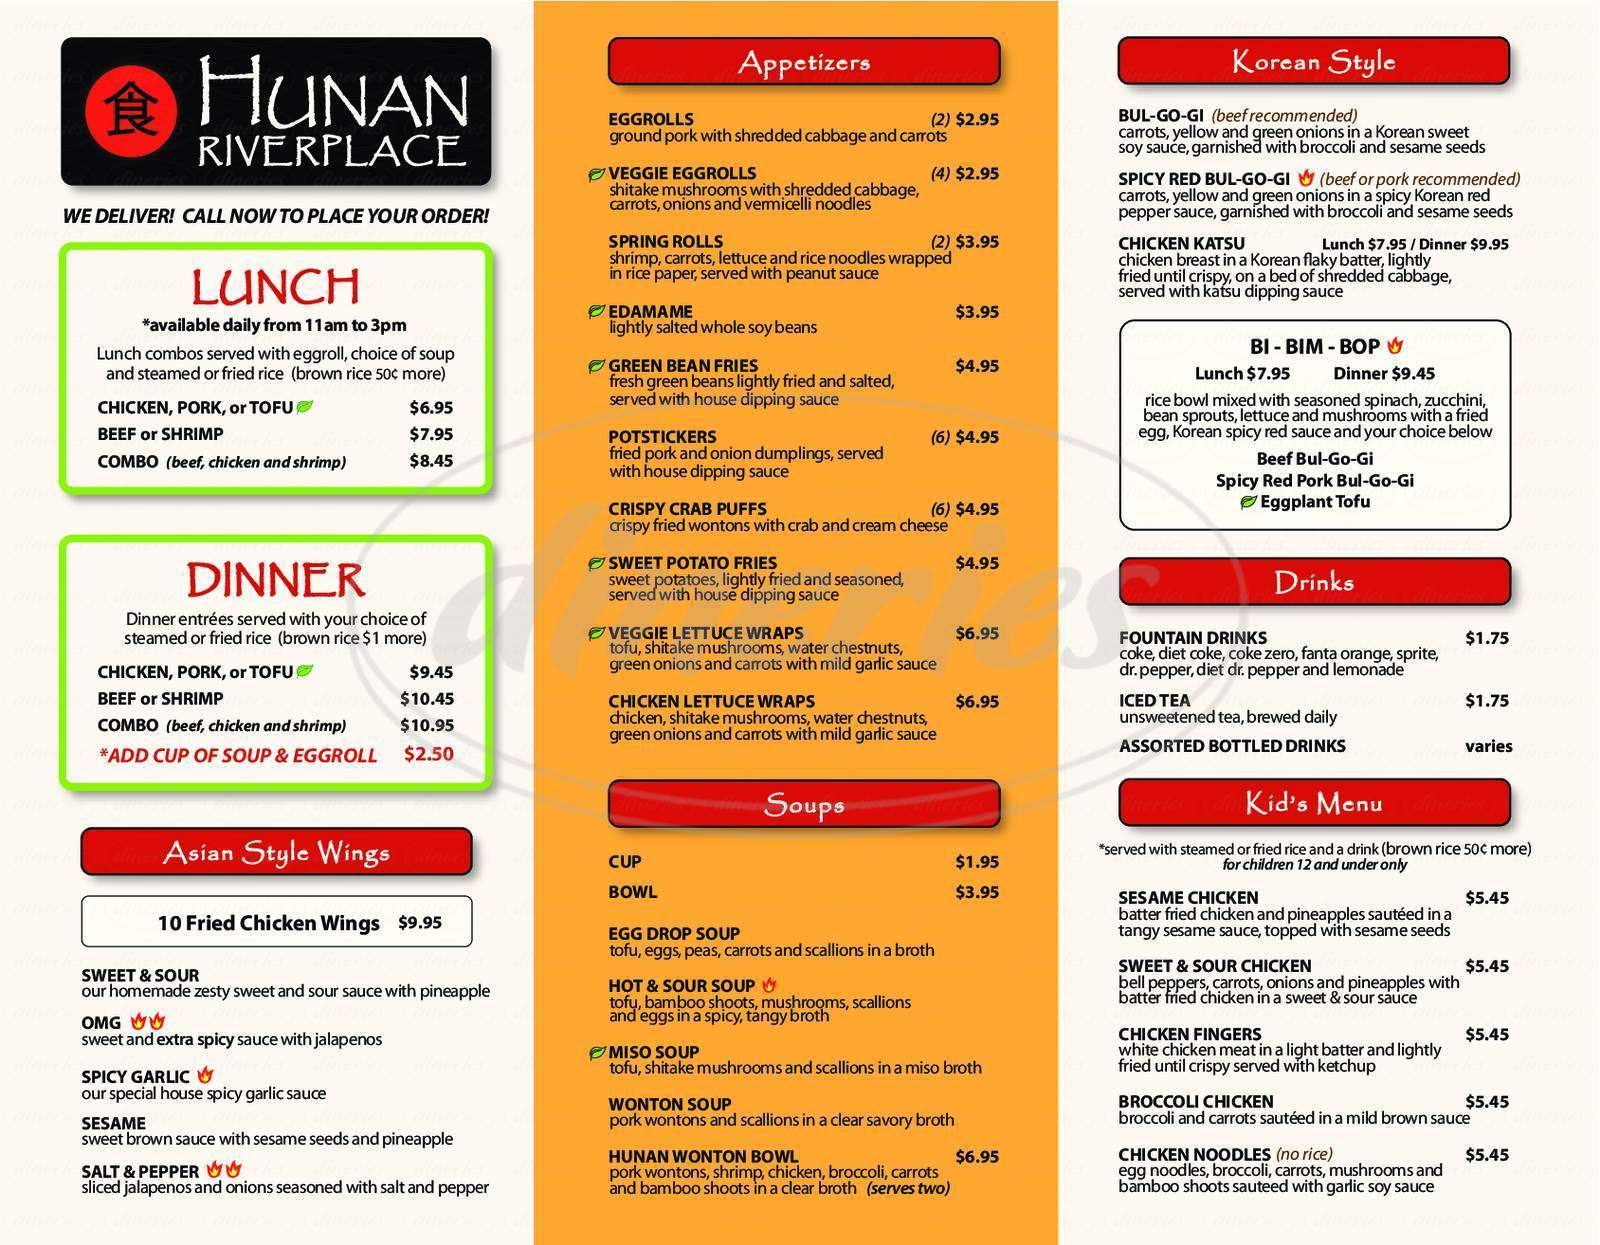 menu for Hunan Riverplace